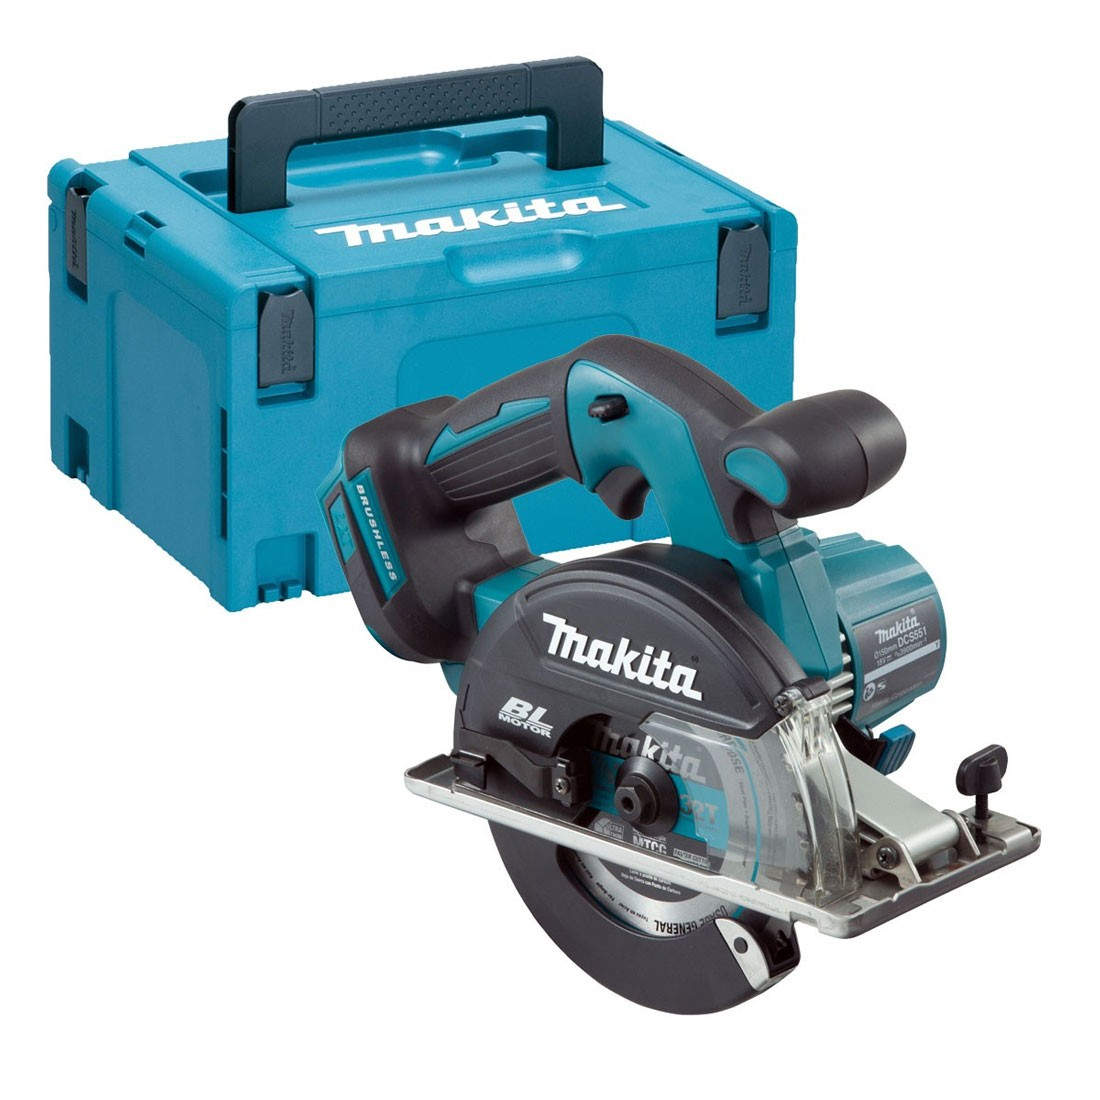 makita dcs551zj lxt 18v 150mm brushless metal cutting saw body only in makpac case powertool world. Black Bedroom Furniture Sets. Home Design Ideas